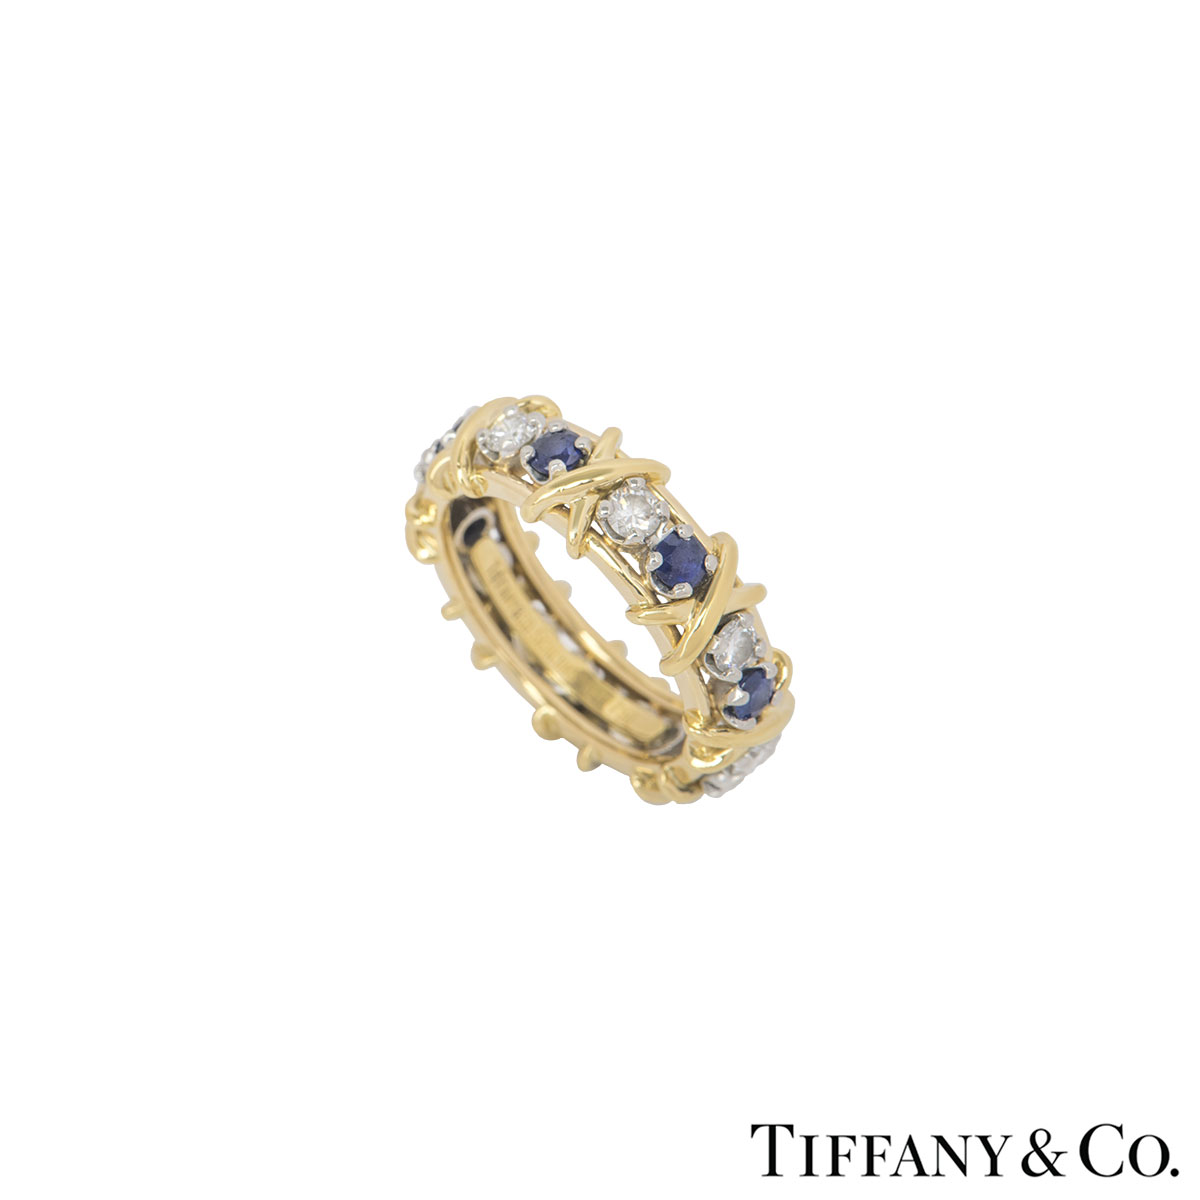 Tiffany & Co. Diamond And Sapphire Schlumberger Ring